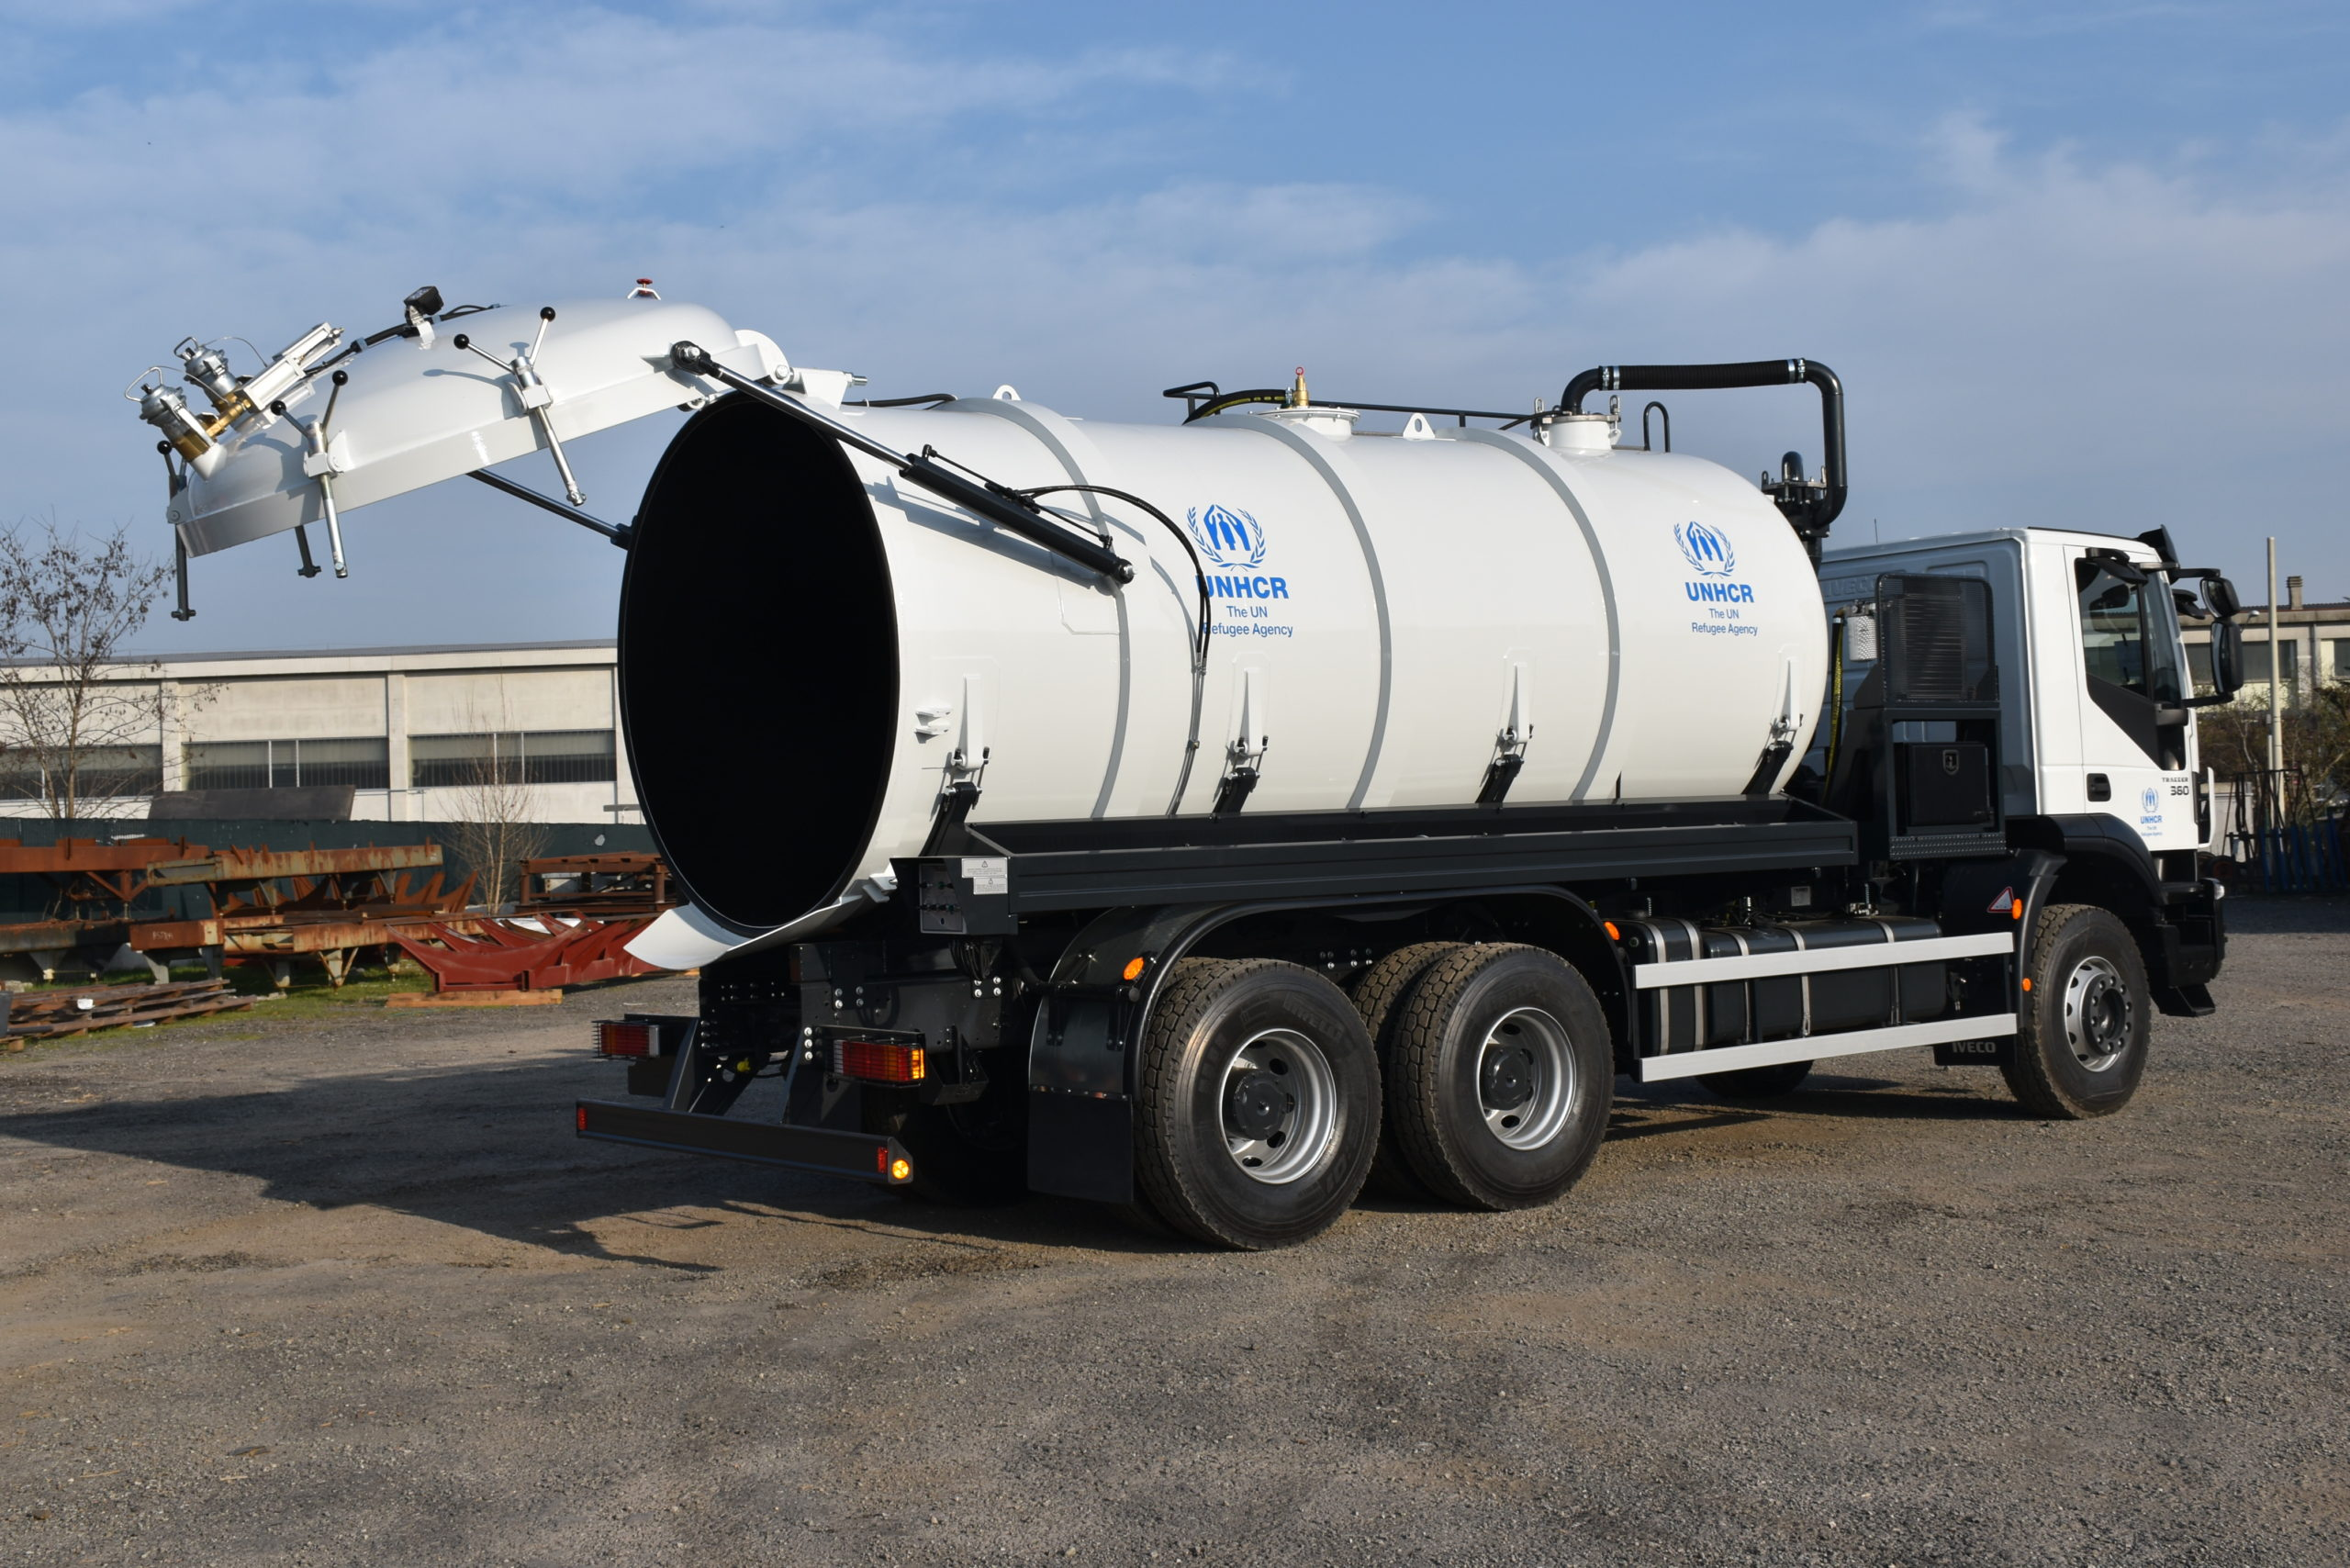 Sewage_tank_for_UNHCR_truck